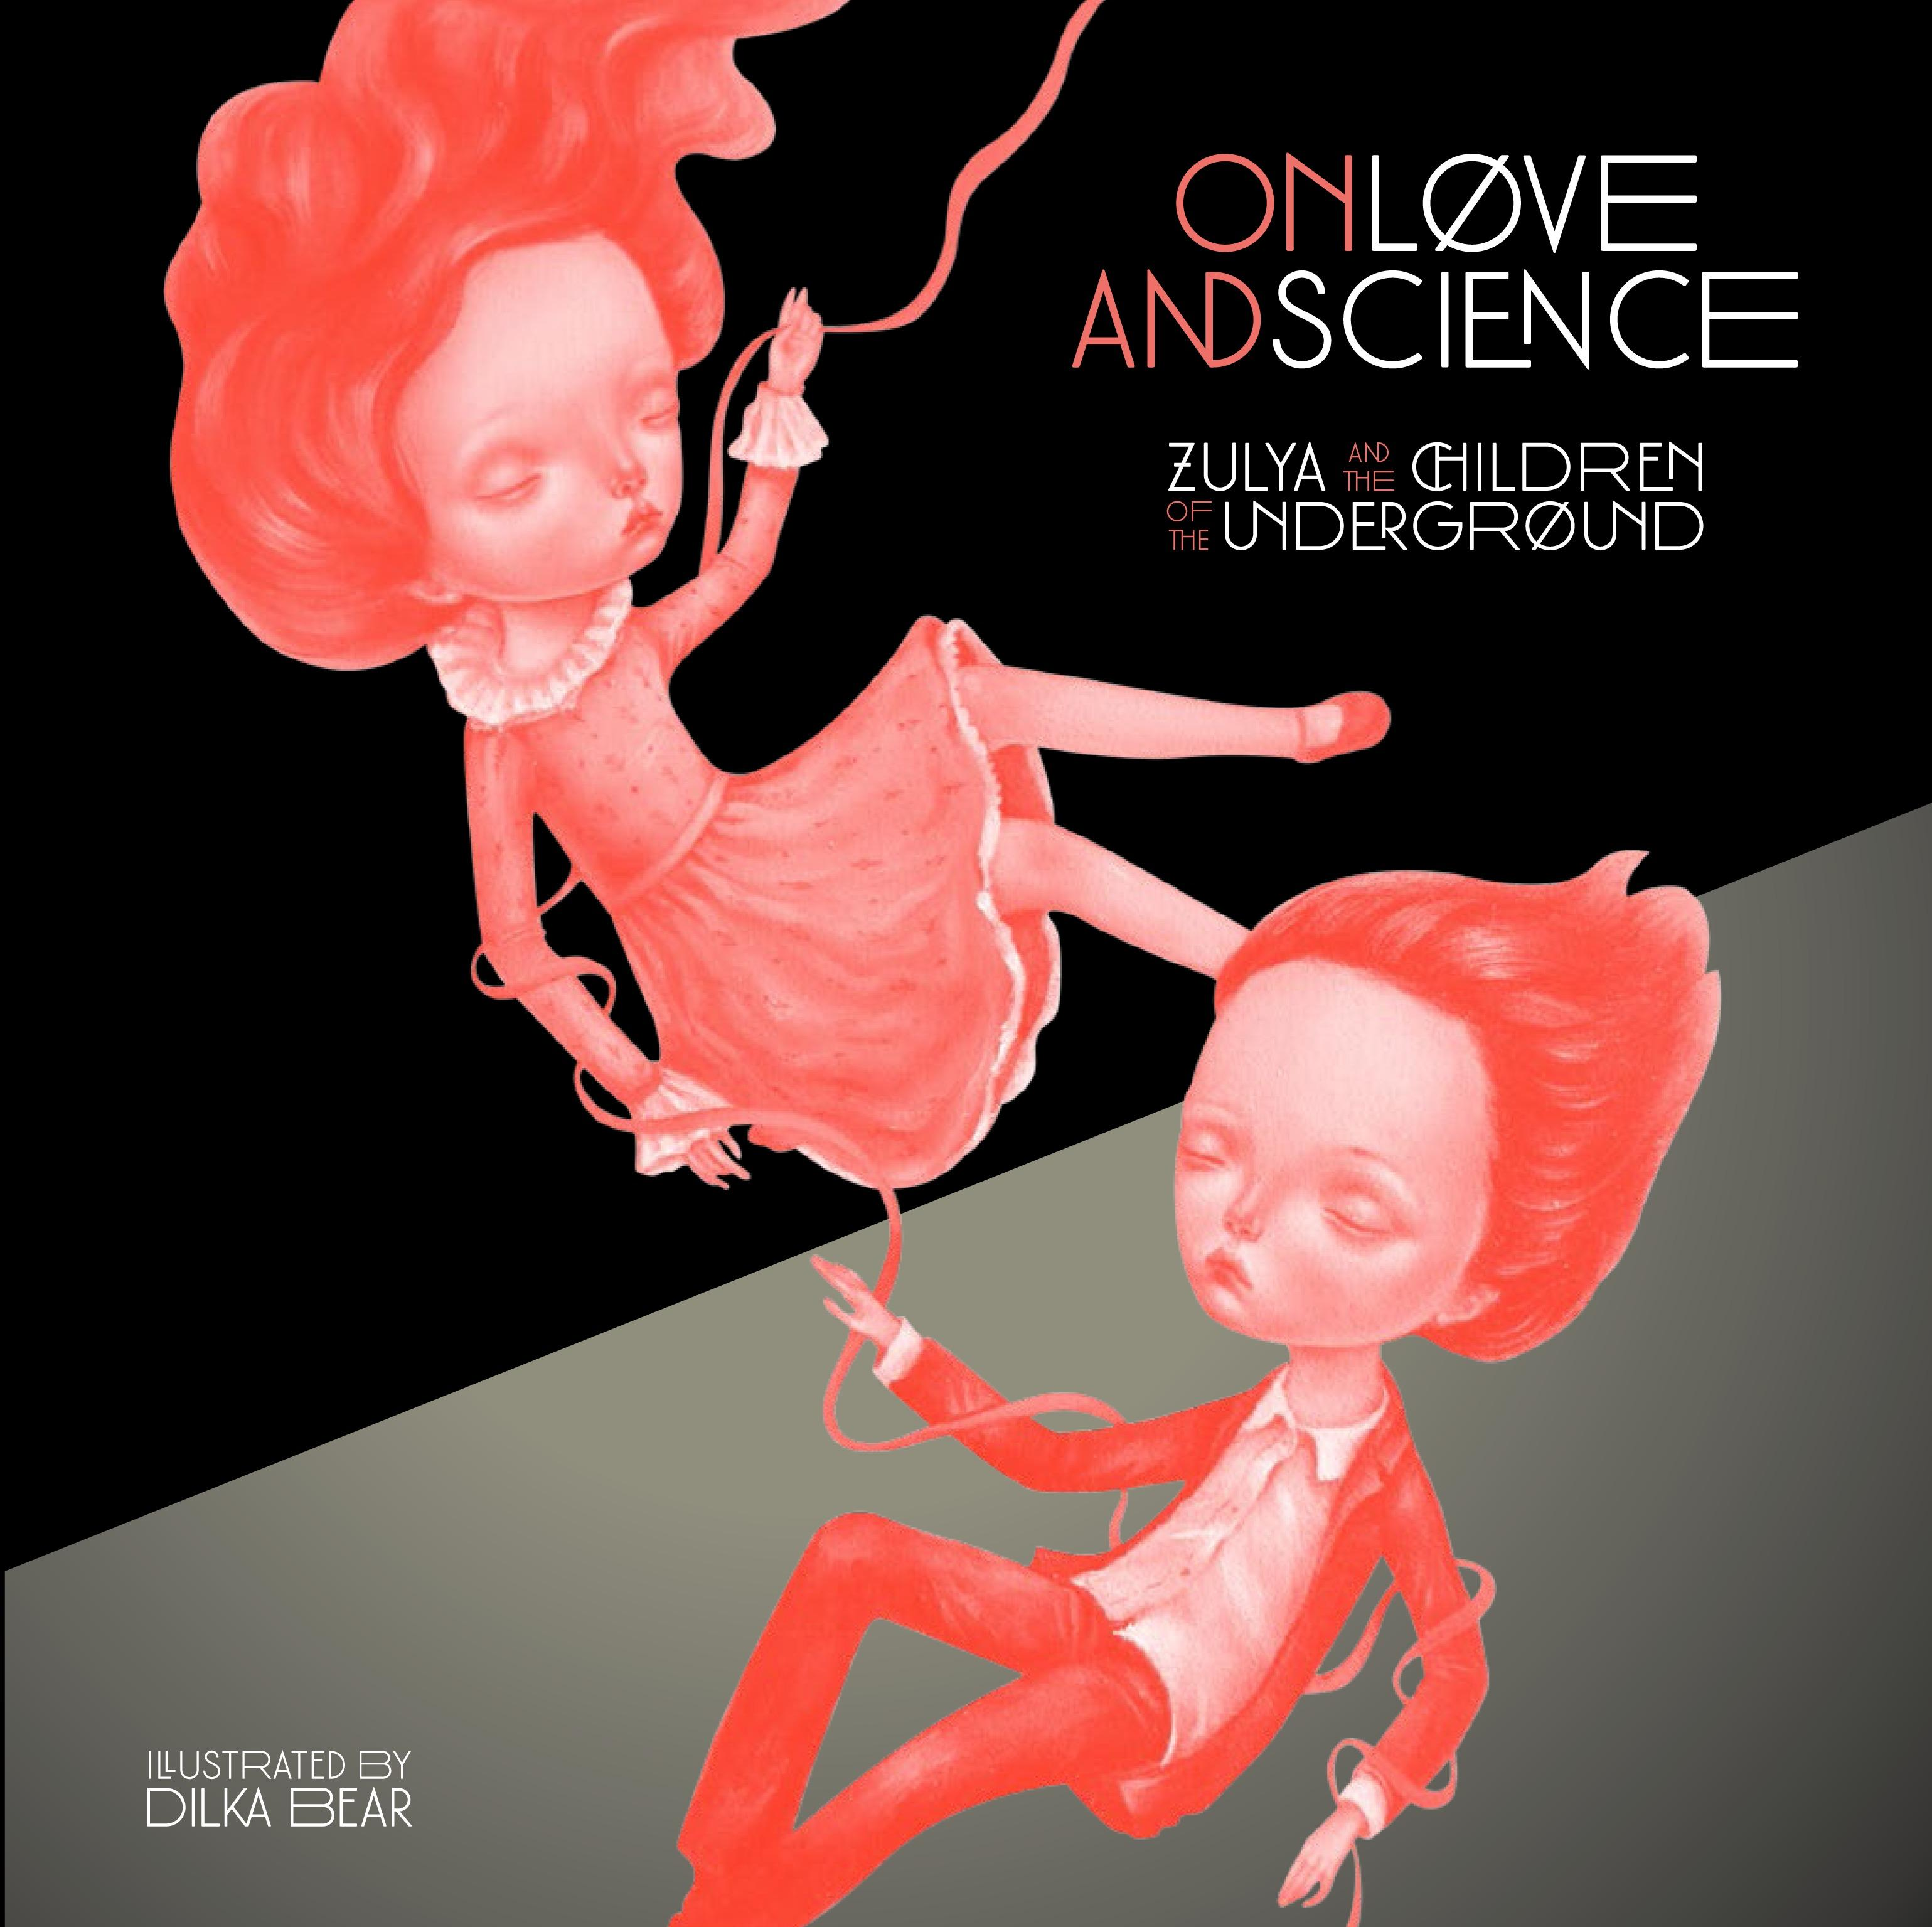 On Love and Science (Book and CD set)